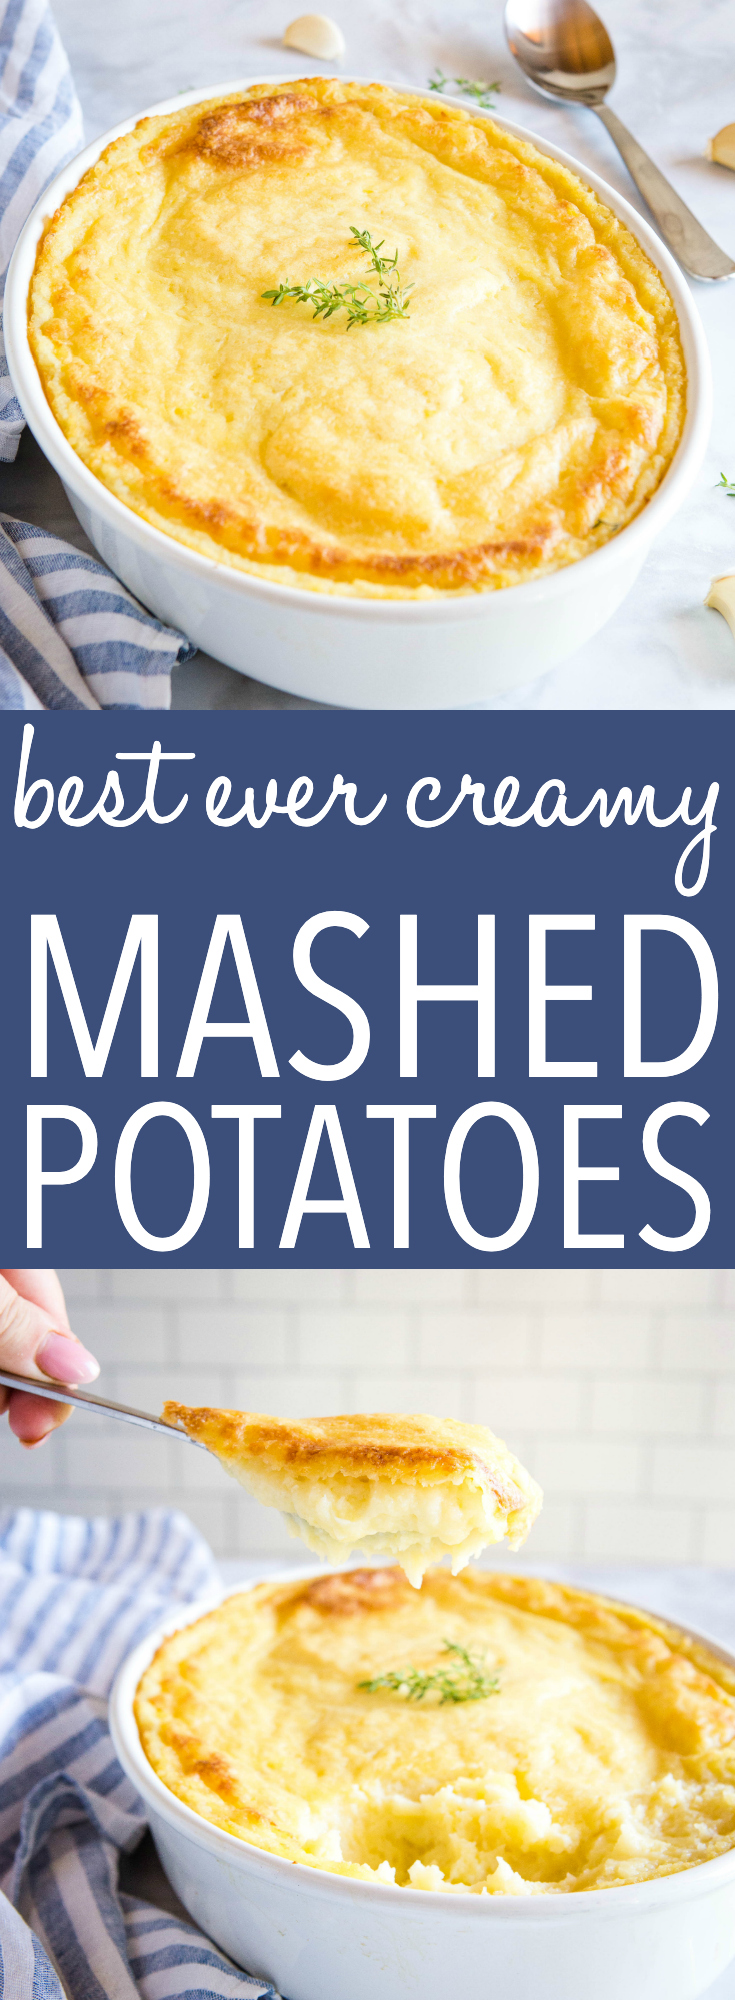 These Best Ever Creamy Mashed Potatoes are a family favourite recipe that's perfect for the holidays! Simple mashed potatoes baked to creamy perfection with butter and cream cheese! Recipe from thebusybaker.ca! #creamy #mashedpotatoes #sidedish #holidays #christmas #thanksgiving #creamcheese #baked #family #entertaining via @busybakerblog